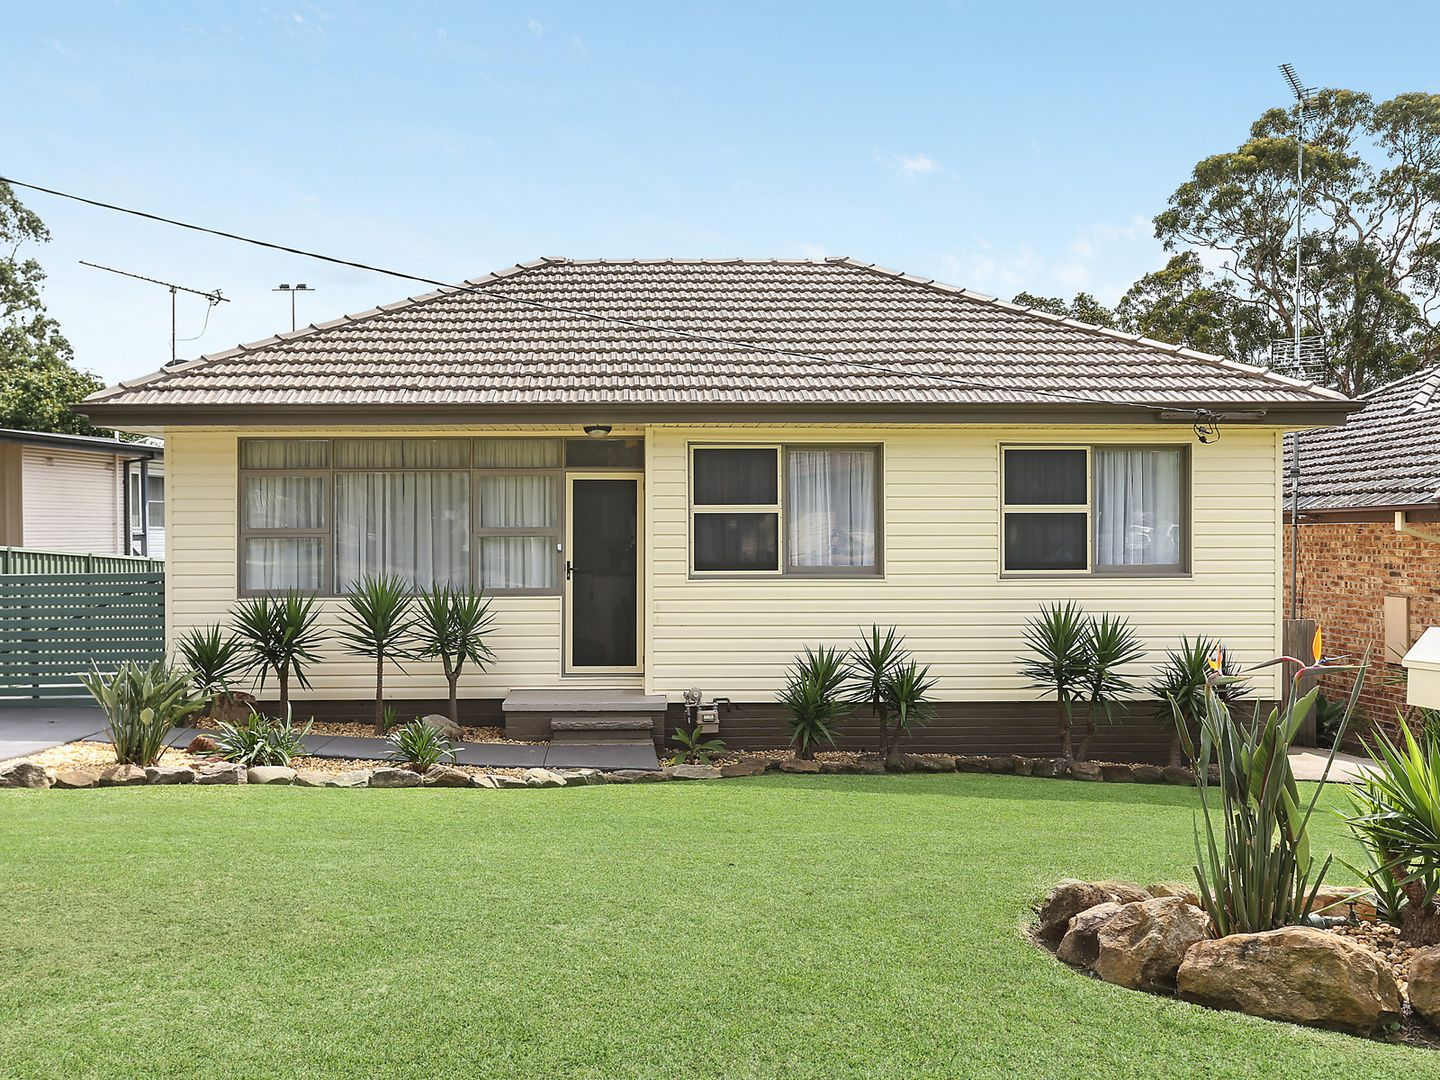 86 Parkside Drive, Dapto NSW 2530, Image 0